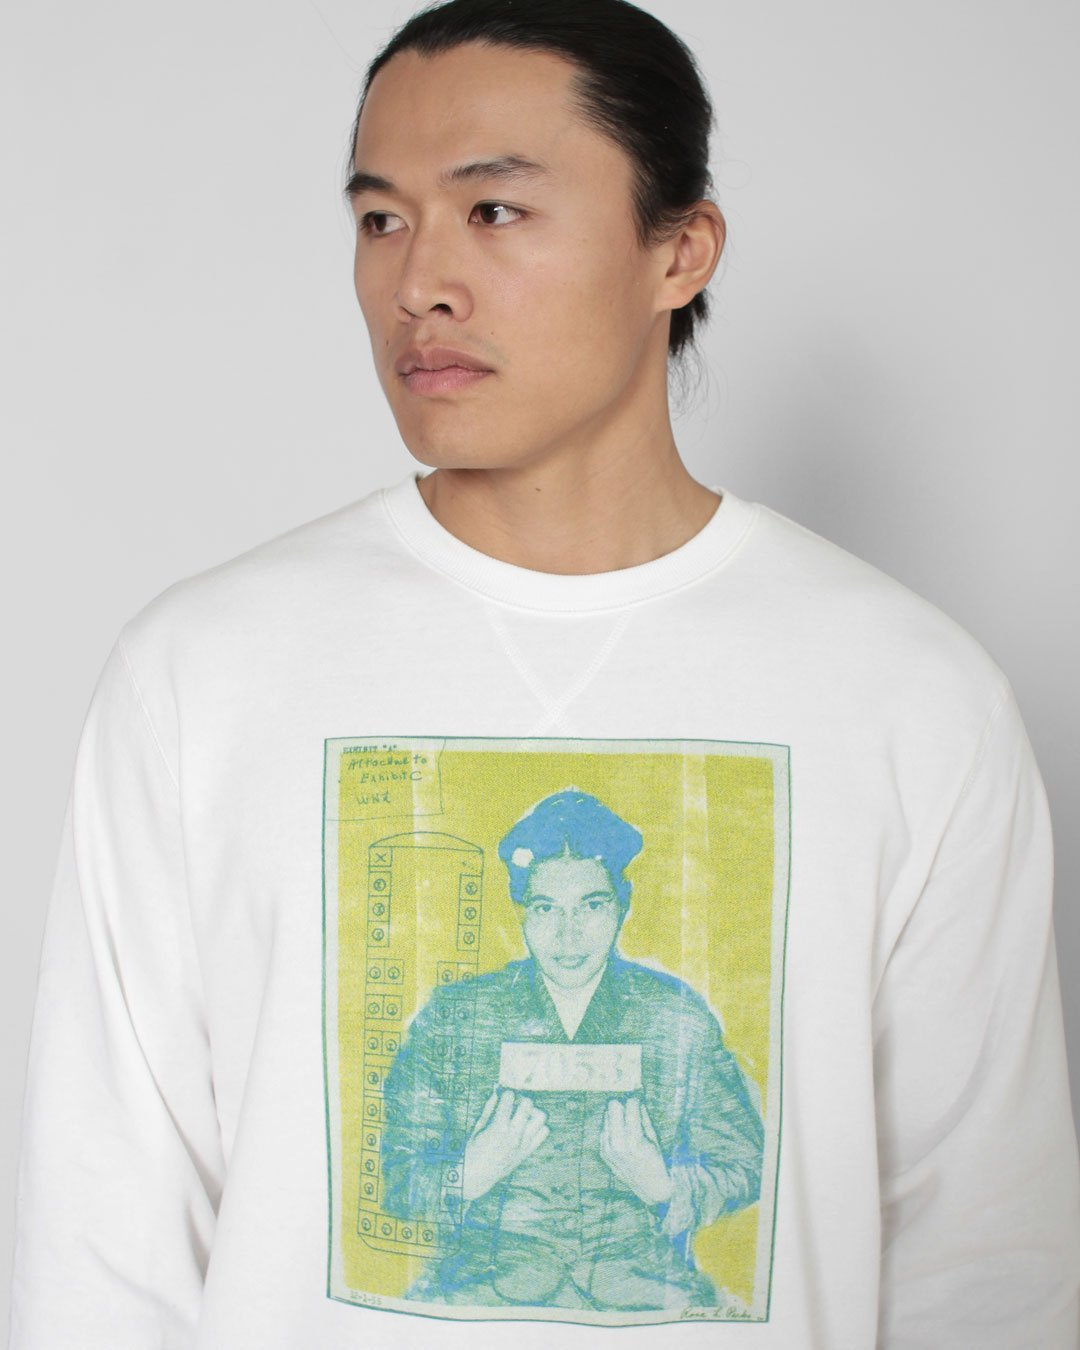 BHT - Rosa Parks Sweatshirt - Roots of Inc dba Roots of Fight